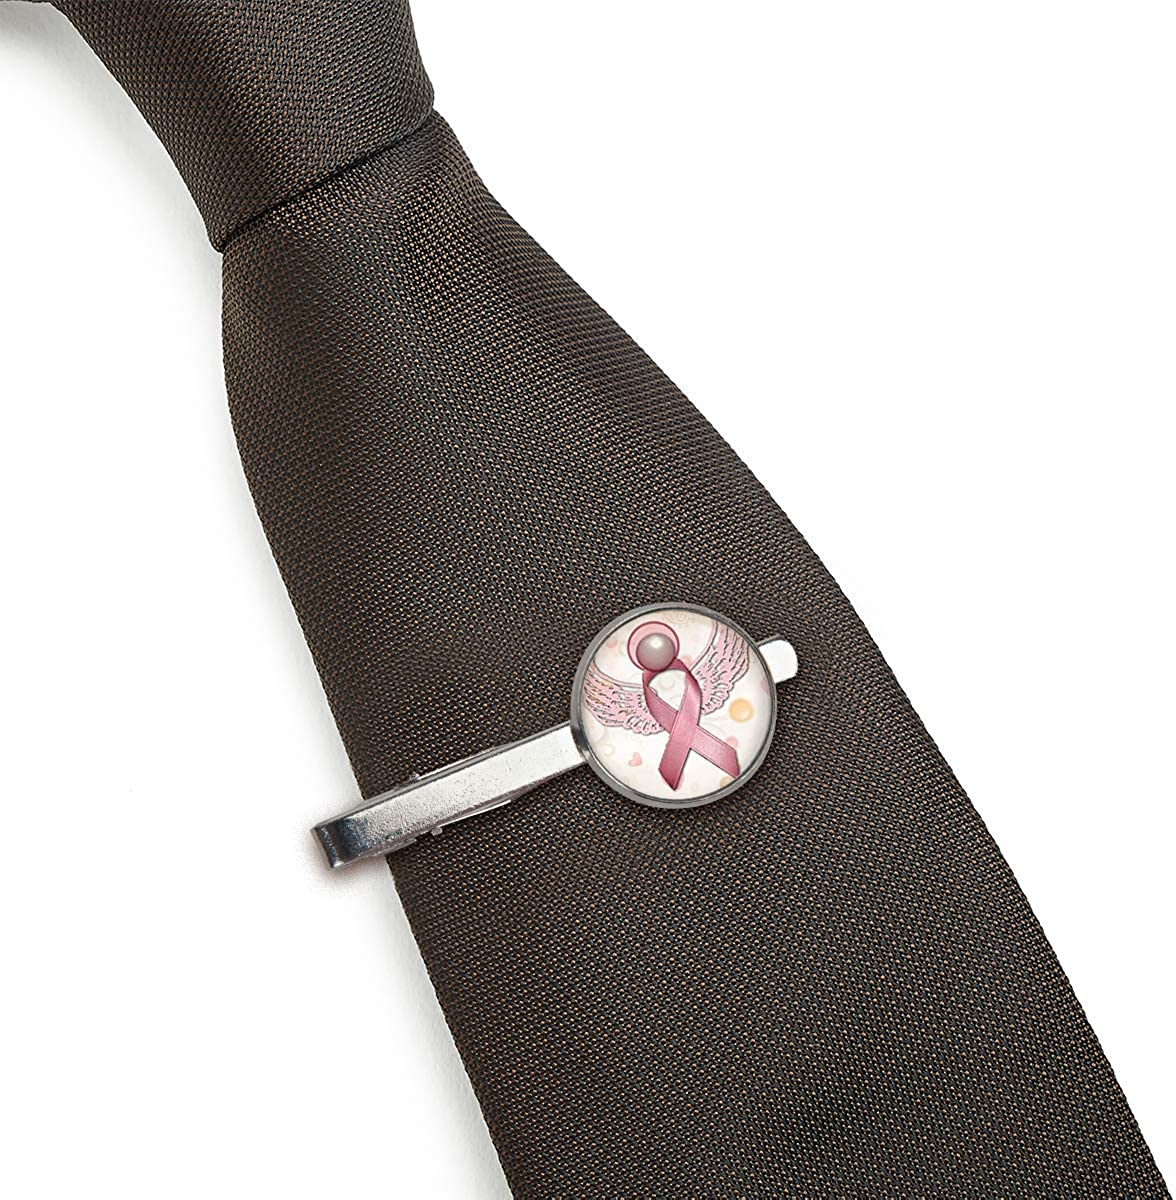 LooPoP Men Tie Clip Pink Wing Ribbon Stainless Tie Pins for Business Wedding Shirts Tie Clips Include Gift Box